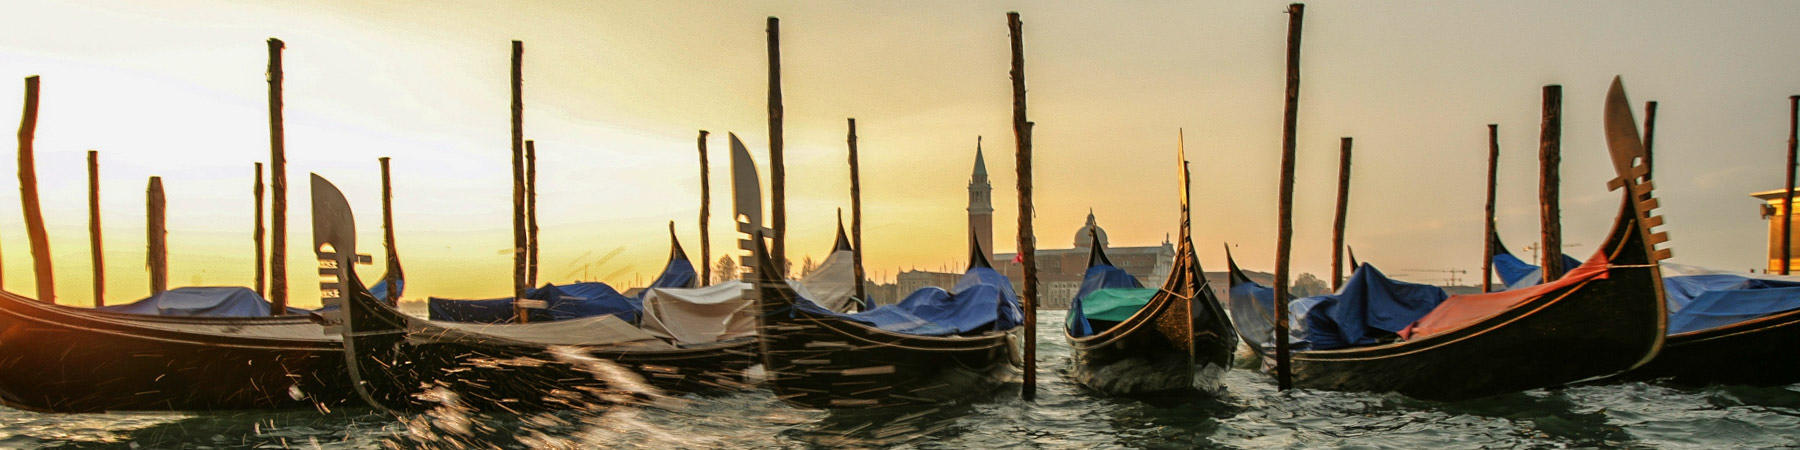 Venice and the lagoon - Photo Plisson